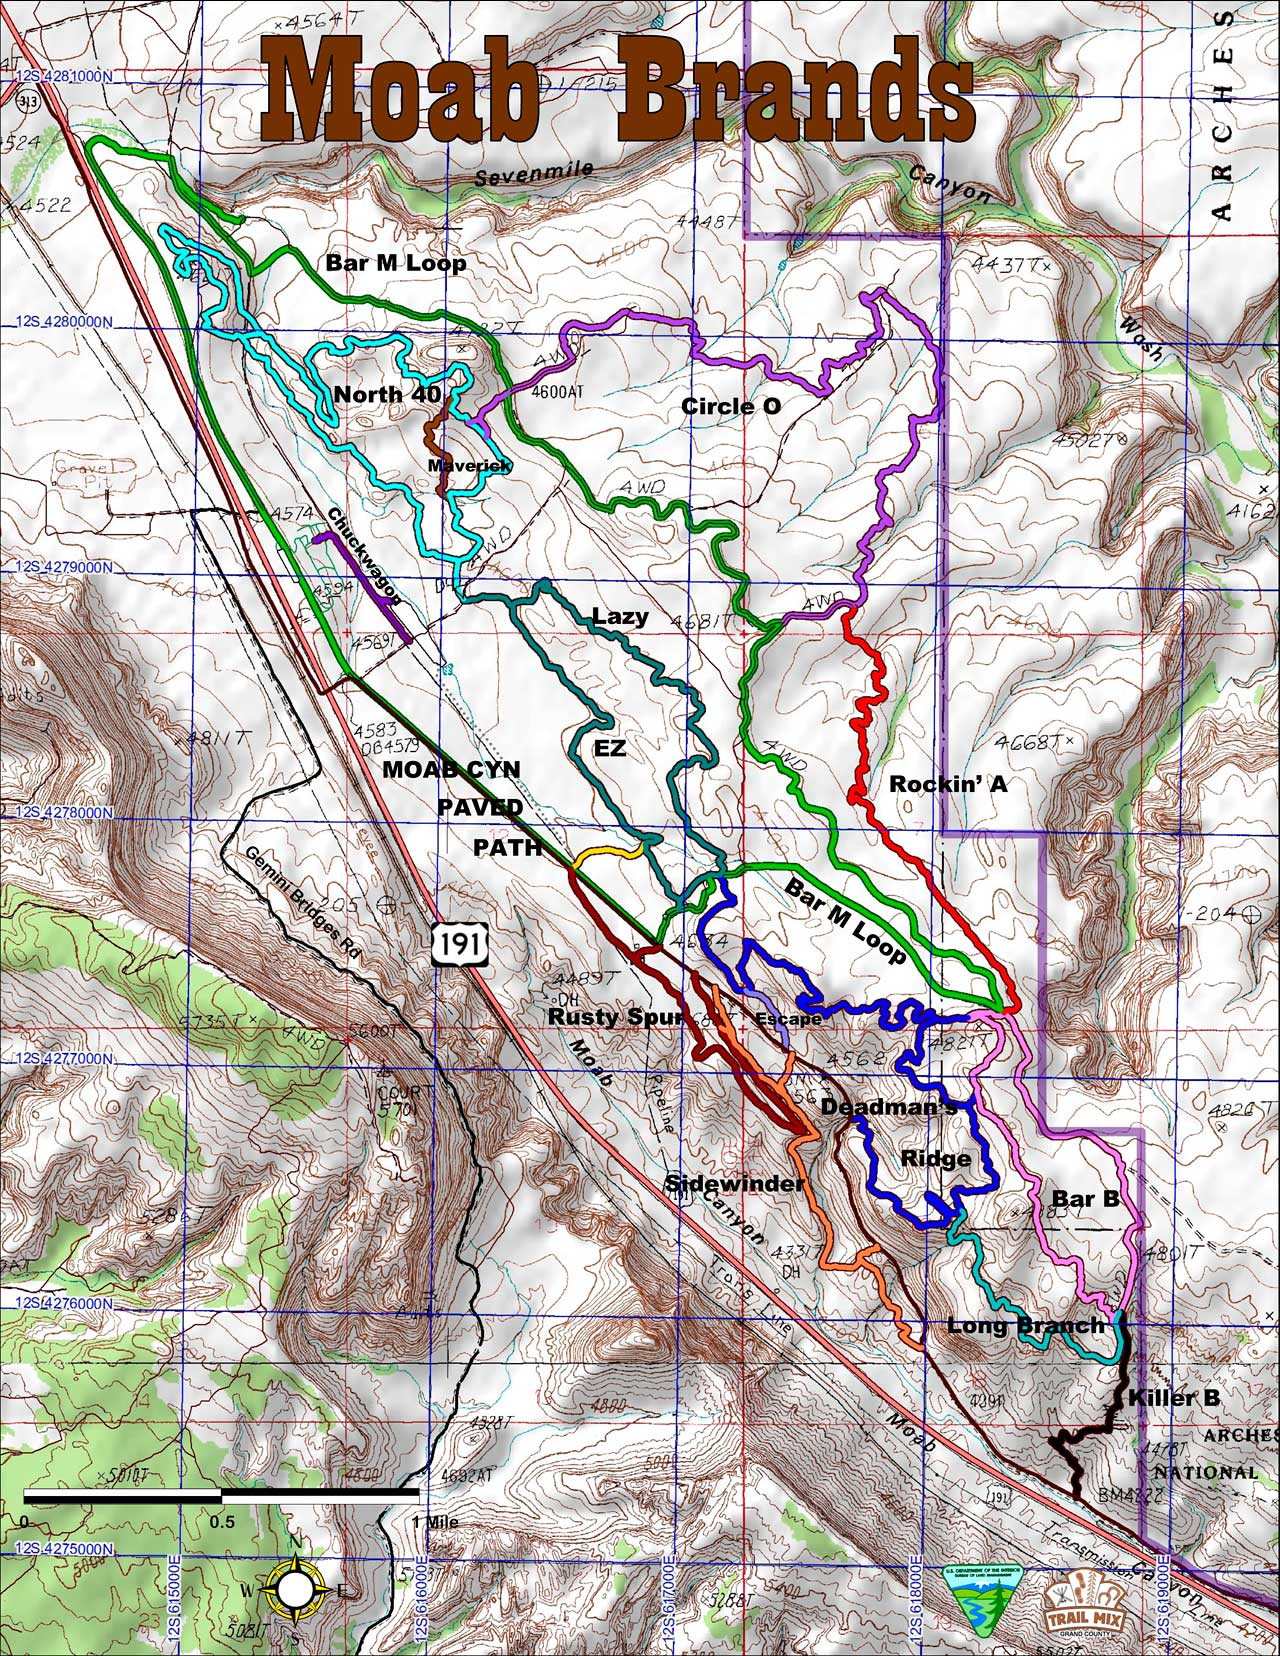 moab-brands-trail-map-lg